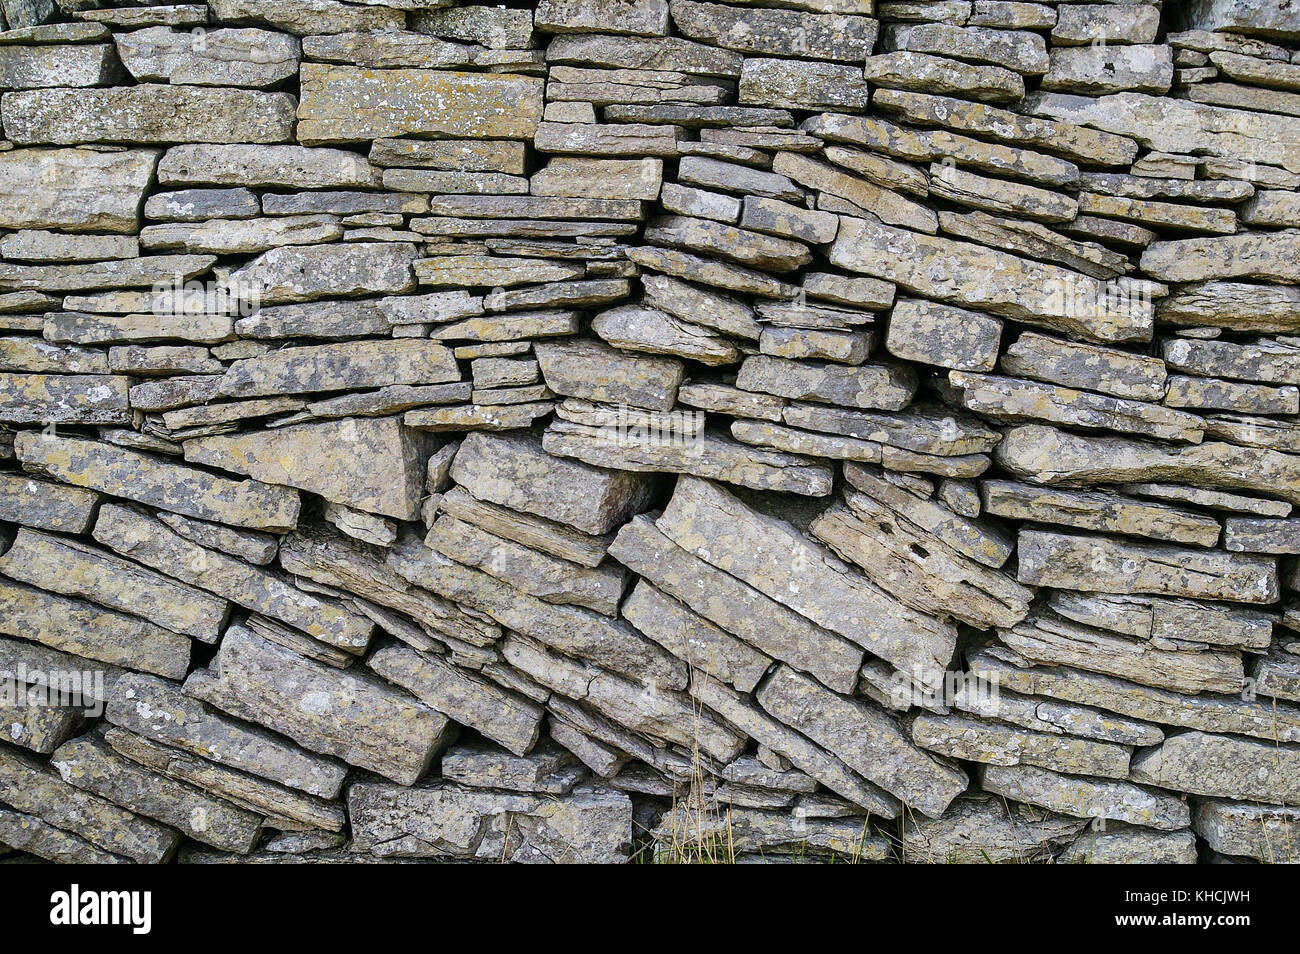 The History And Craft Of Dry Stone Walls Merchant Serenity